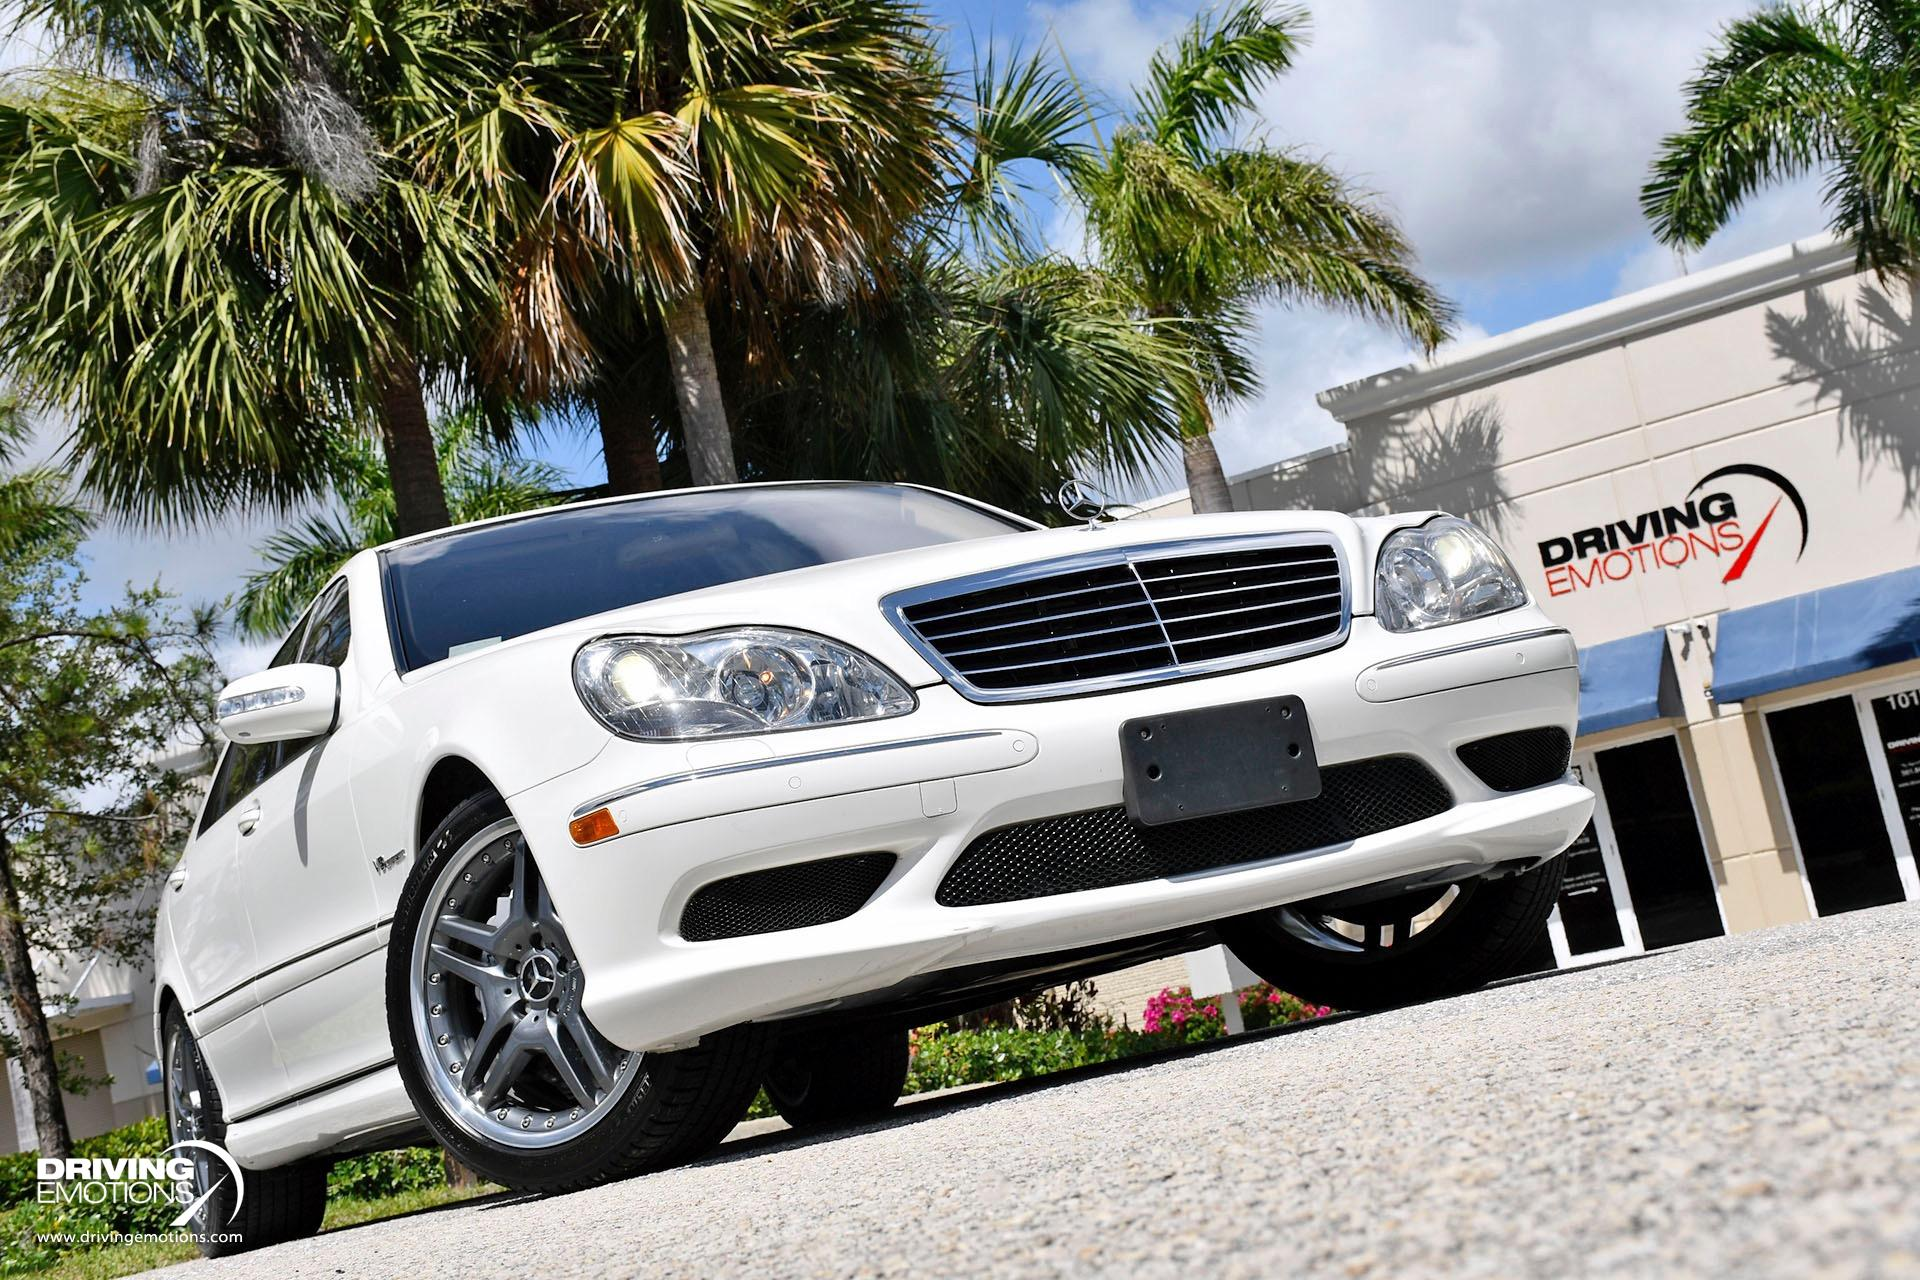 Used 2006 Mercedes-Benz S55 AMG S 55 AMG Upgraded S65 Wheels!! | Lake Park, FL